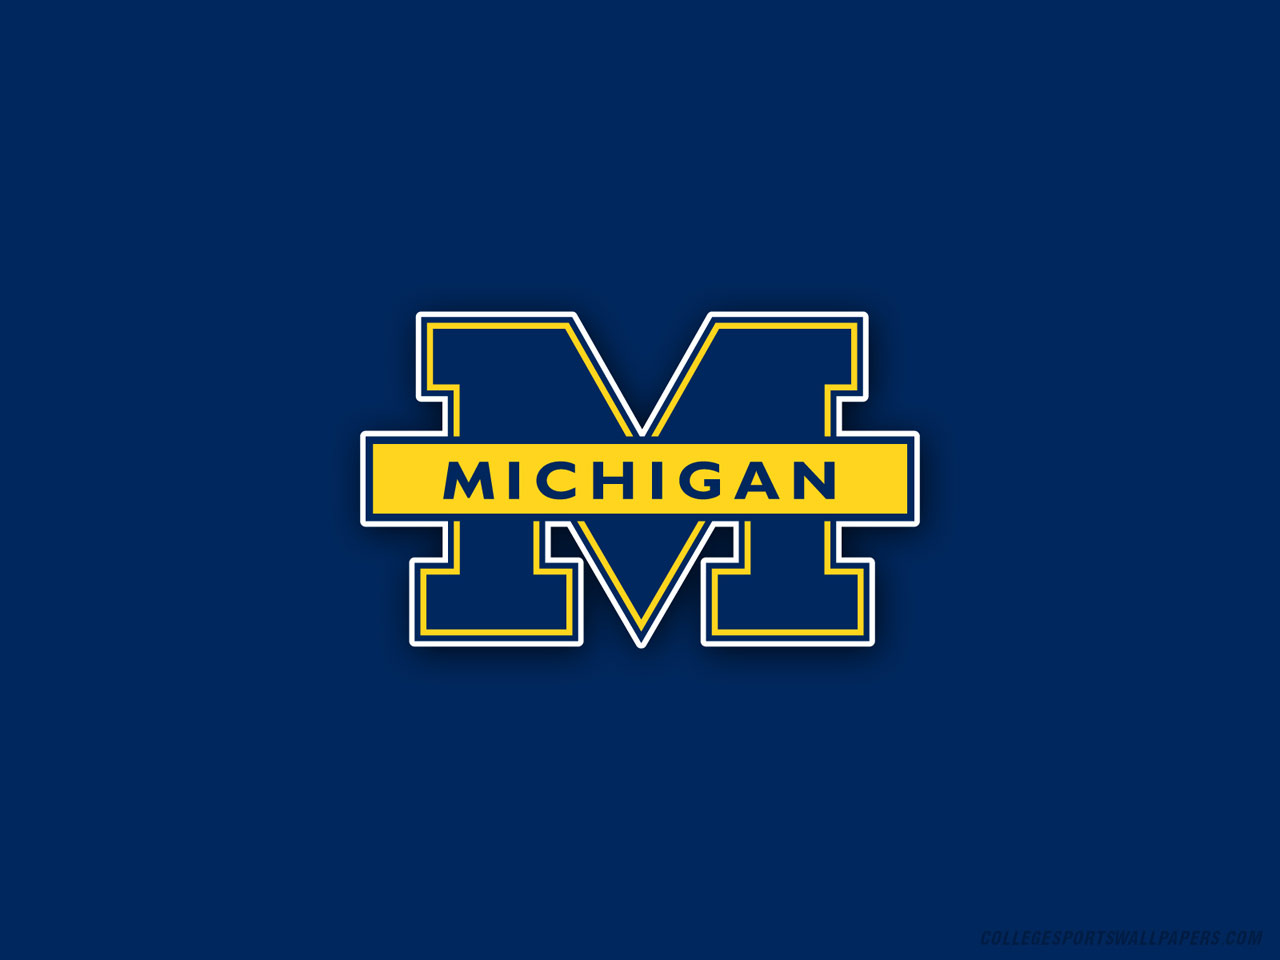 Michigan Wolverines computer desktop wallpapers pictures 1280x960